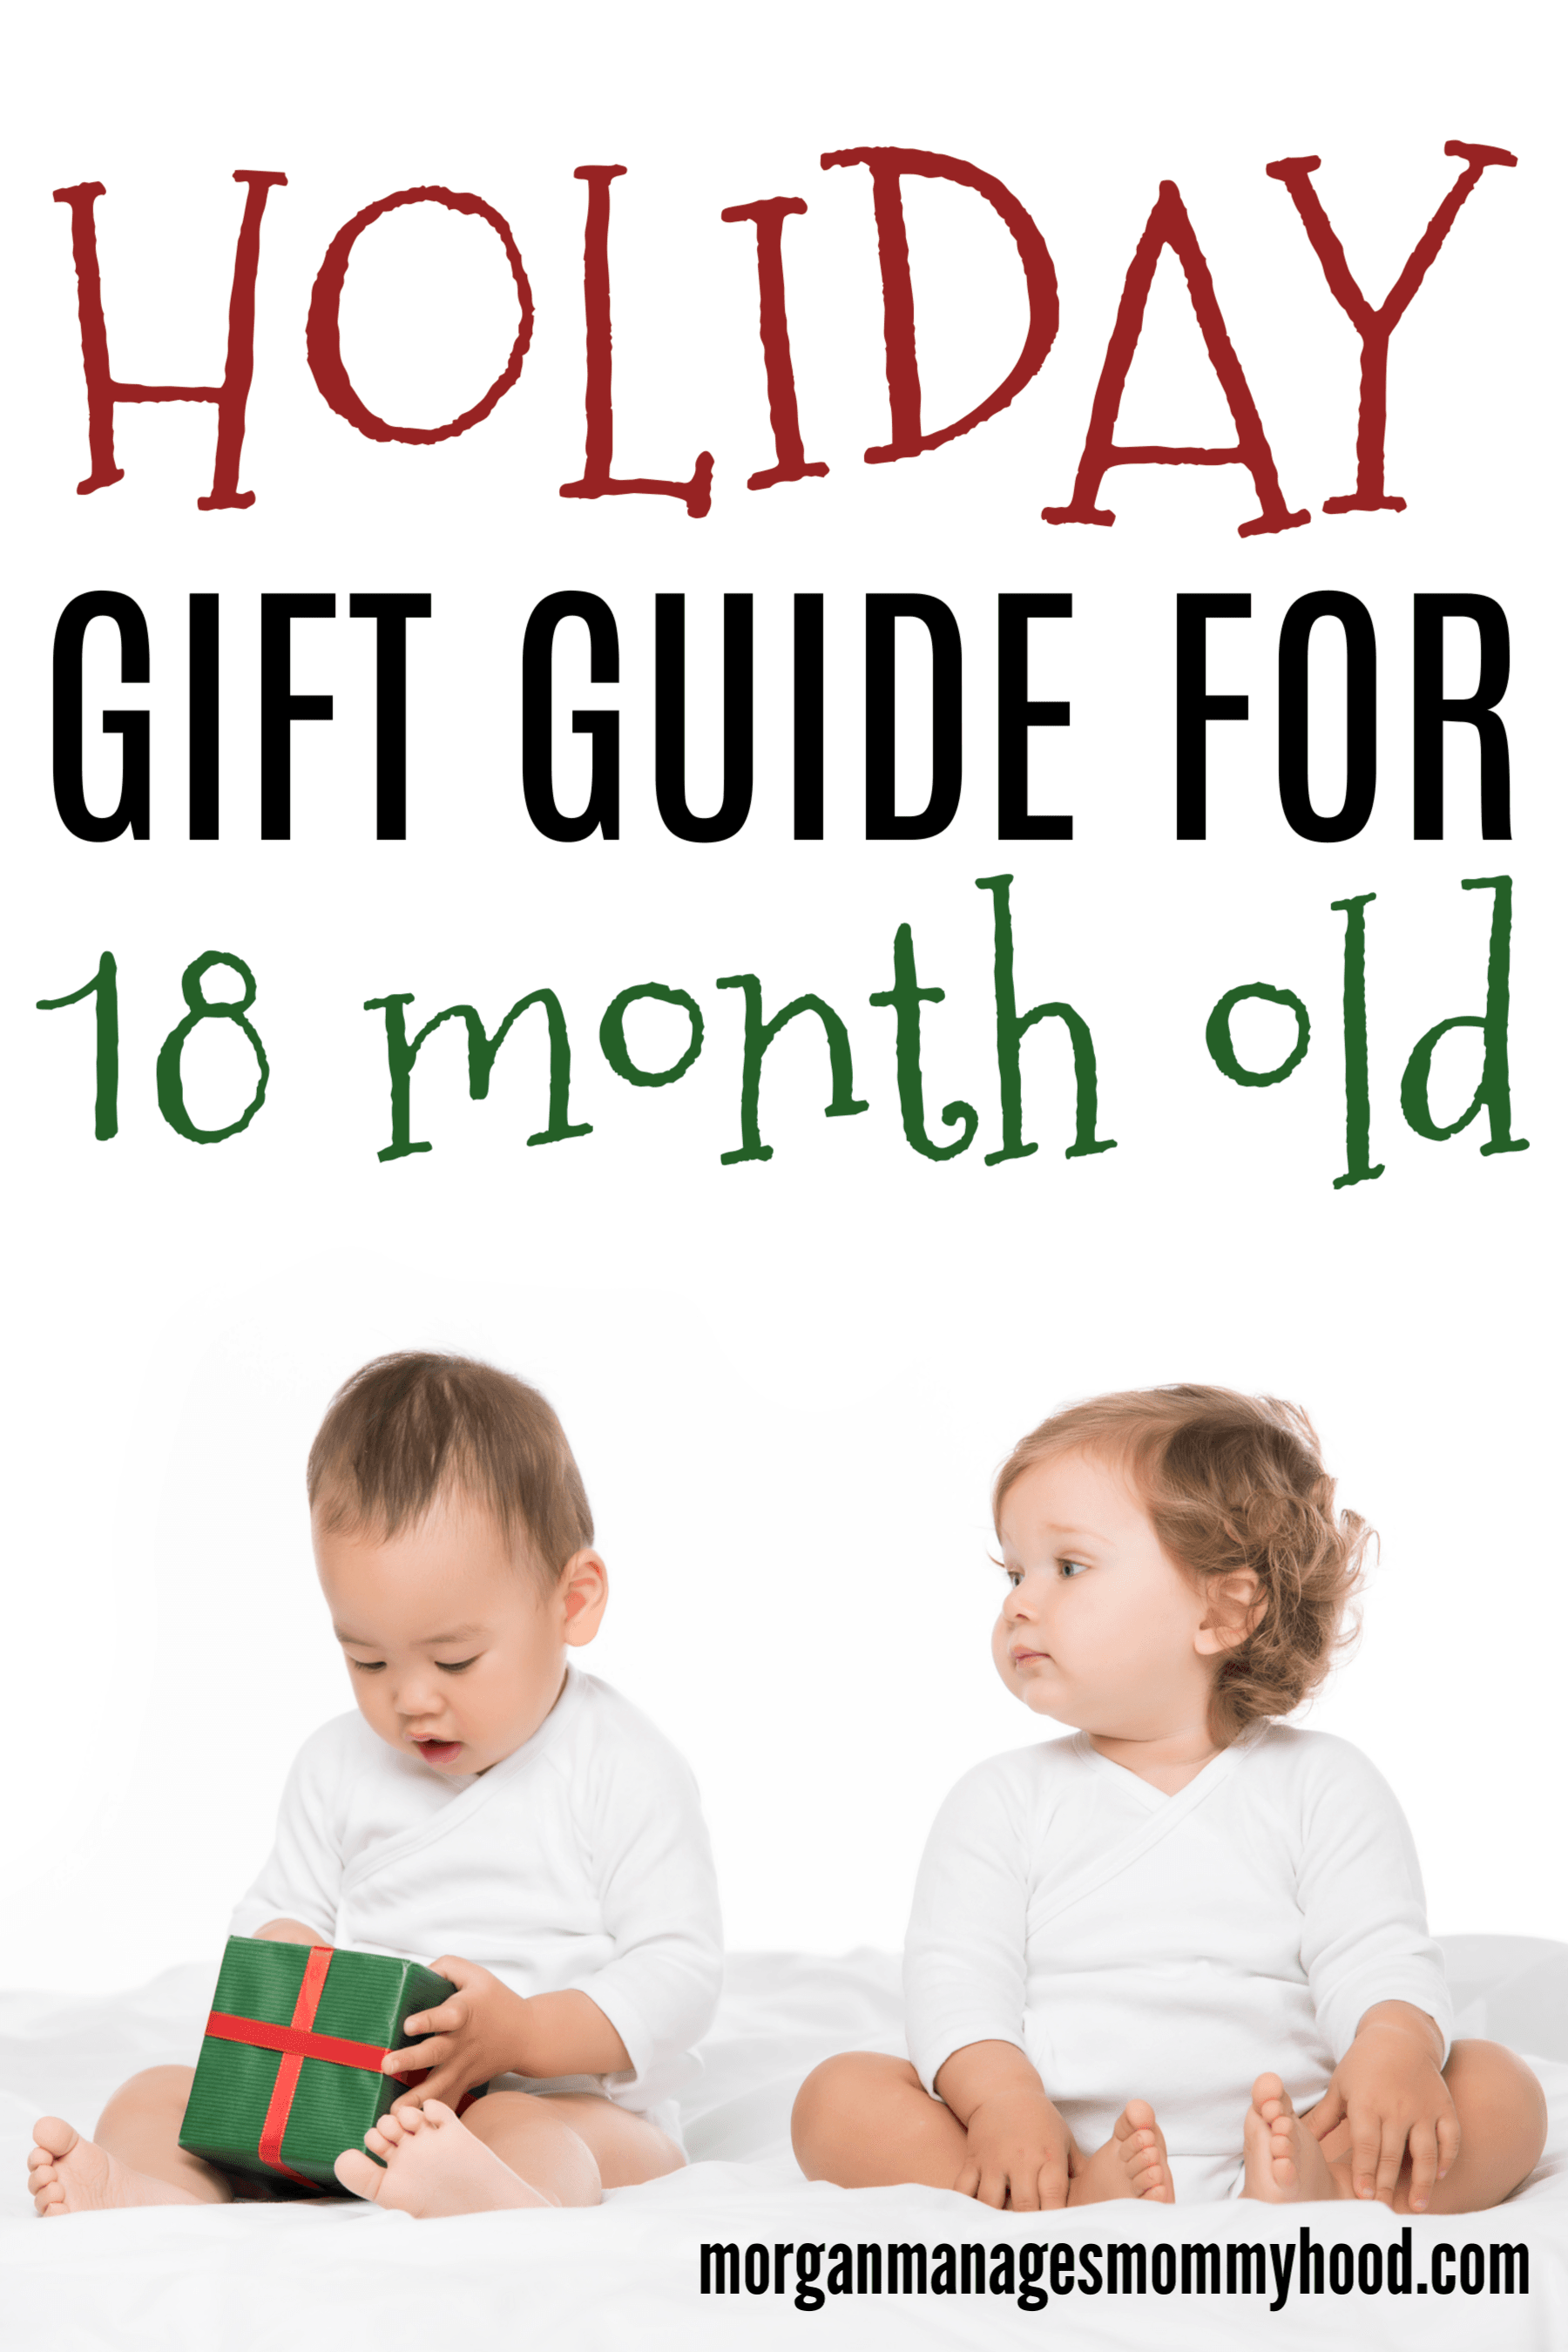 a pinable image for a holiday guide of gifts for 18 month old with 2 toddlers playing with christmas presents on a white background